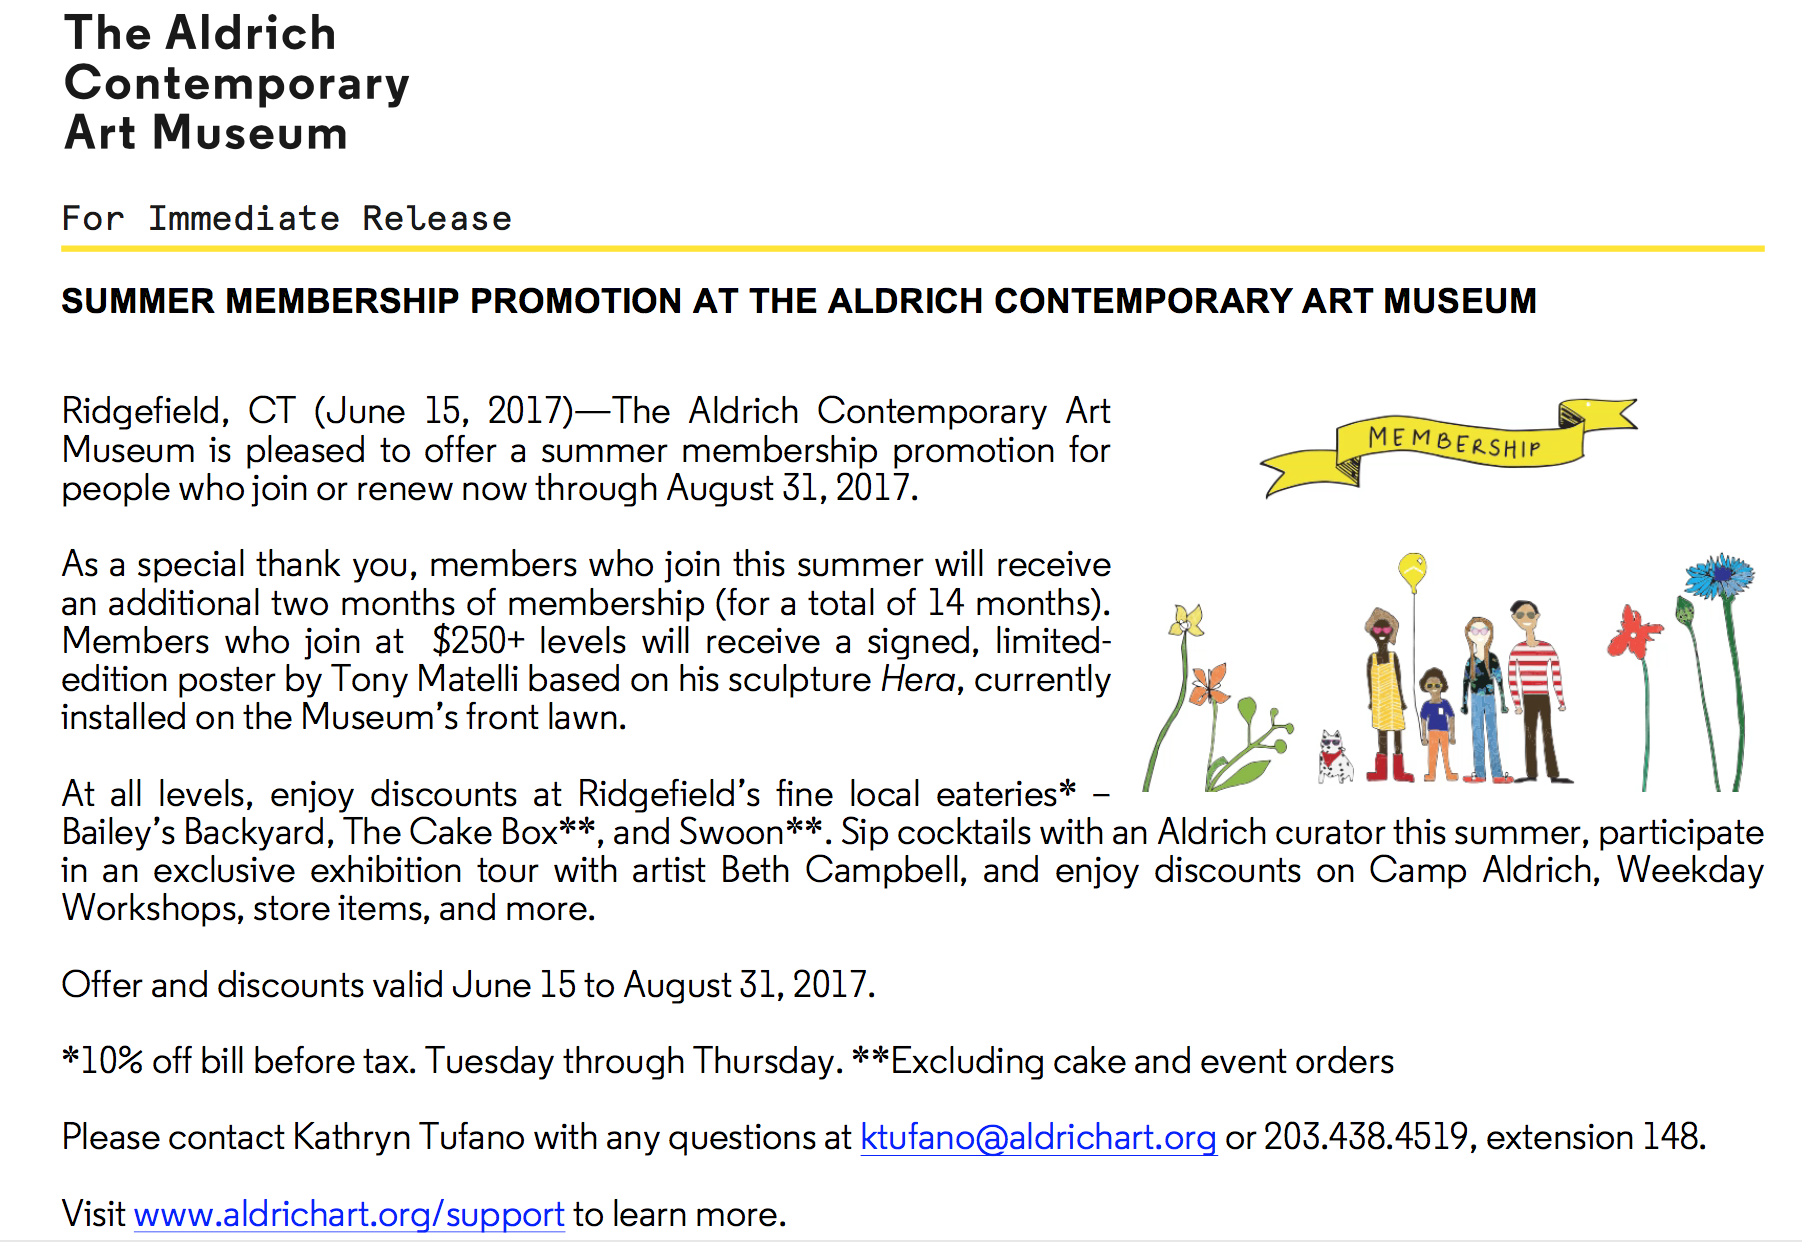 Summer Member Promotion at The Aldrich